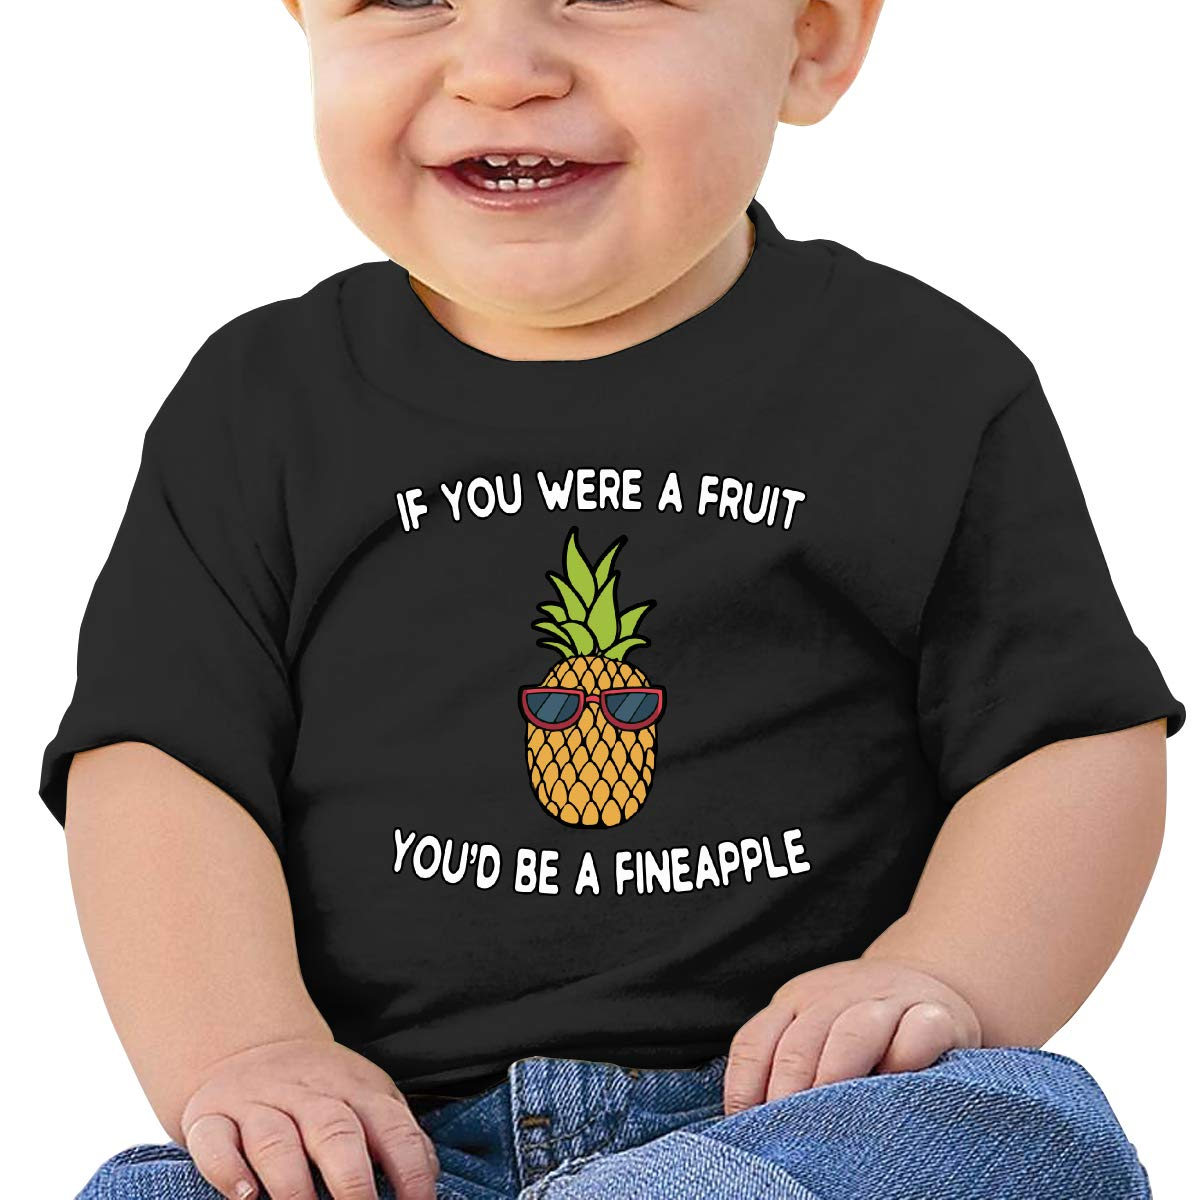 ZUGFGF-S3 If You were A Fruit Youd Be A Fineapple Baby Boy Newborn Short Sleeve T Shirts 6-24 Month Cotton Tops